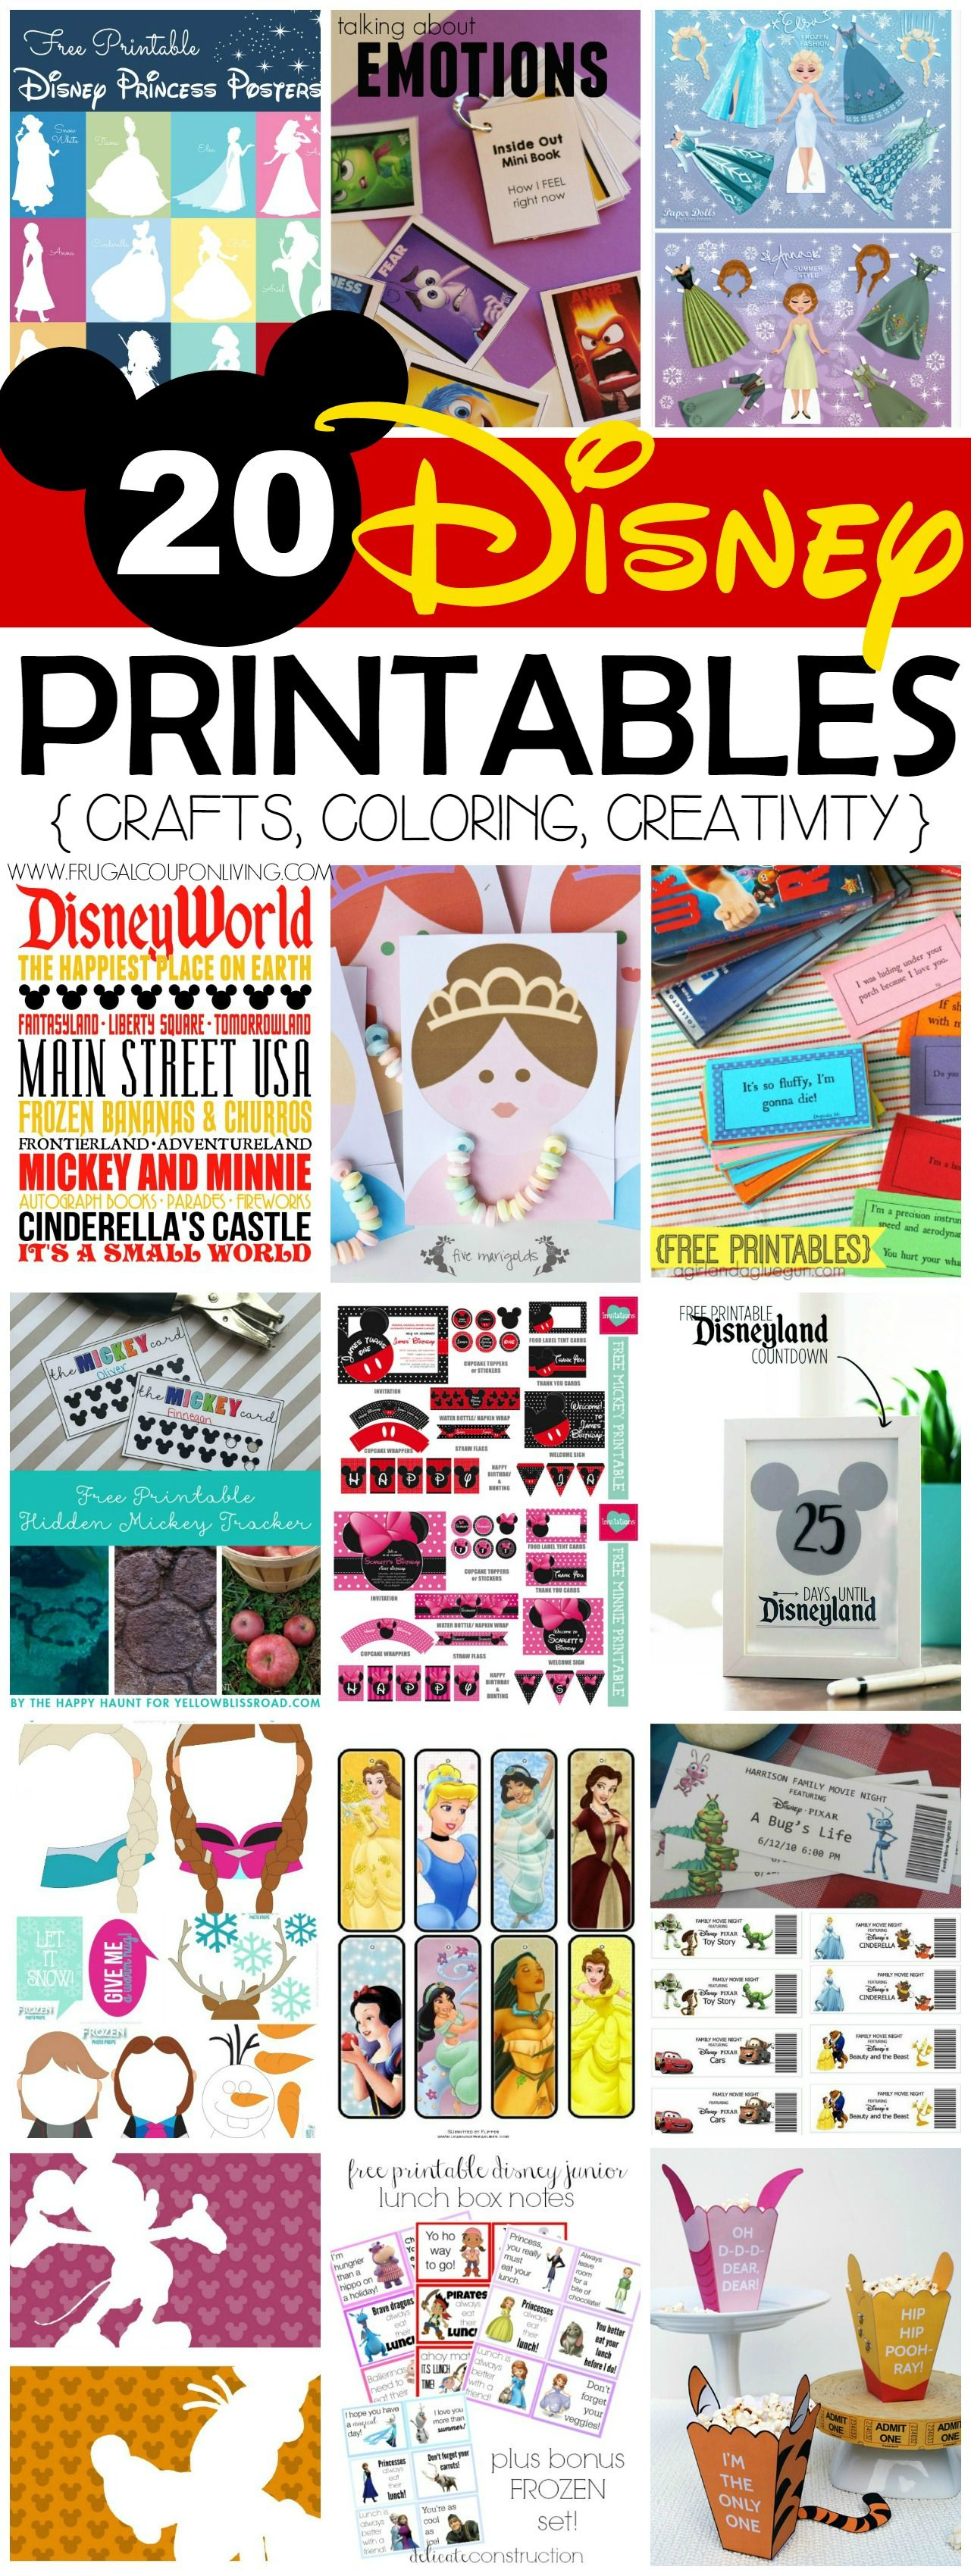 20 Free Disney Printables Crafts Coloring Creativity Disney Printables Free Disney Scrapbook Disney Crafts